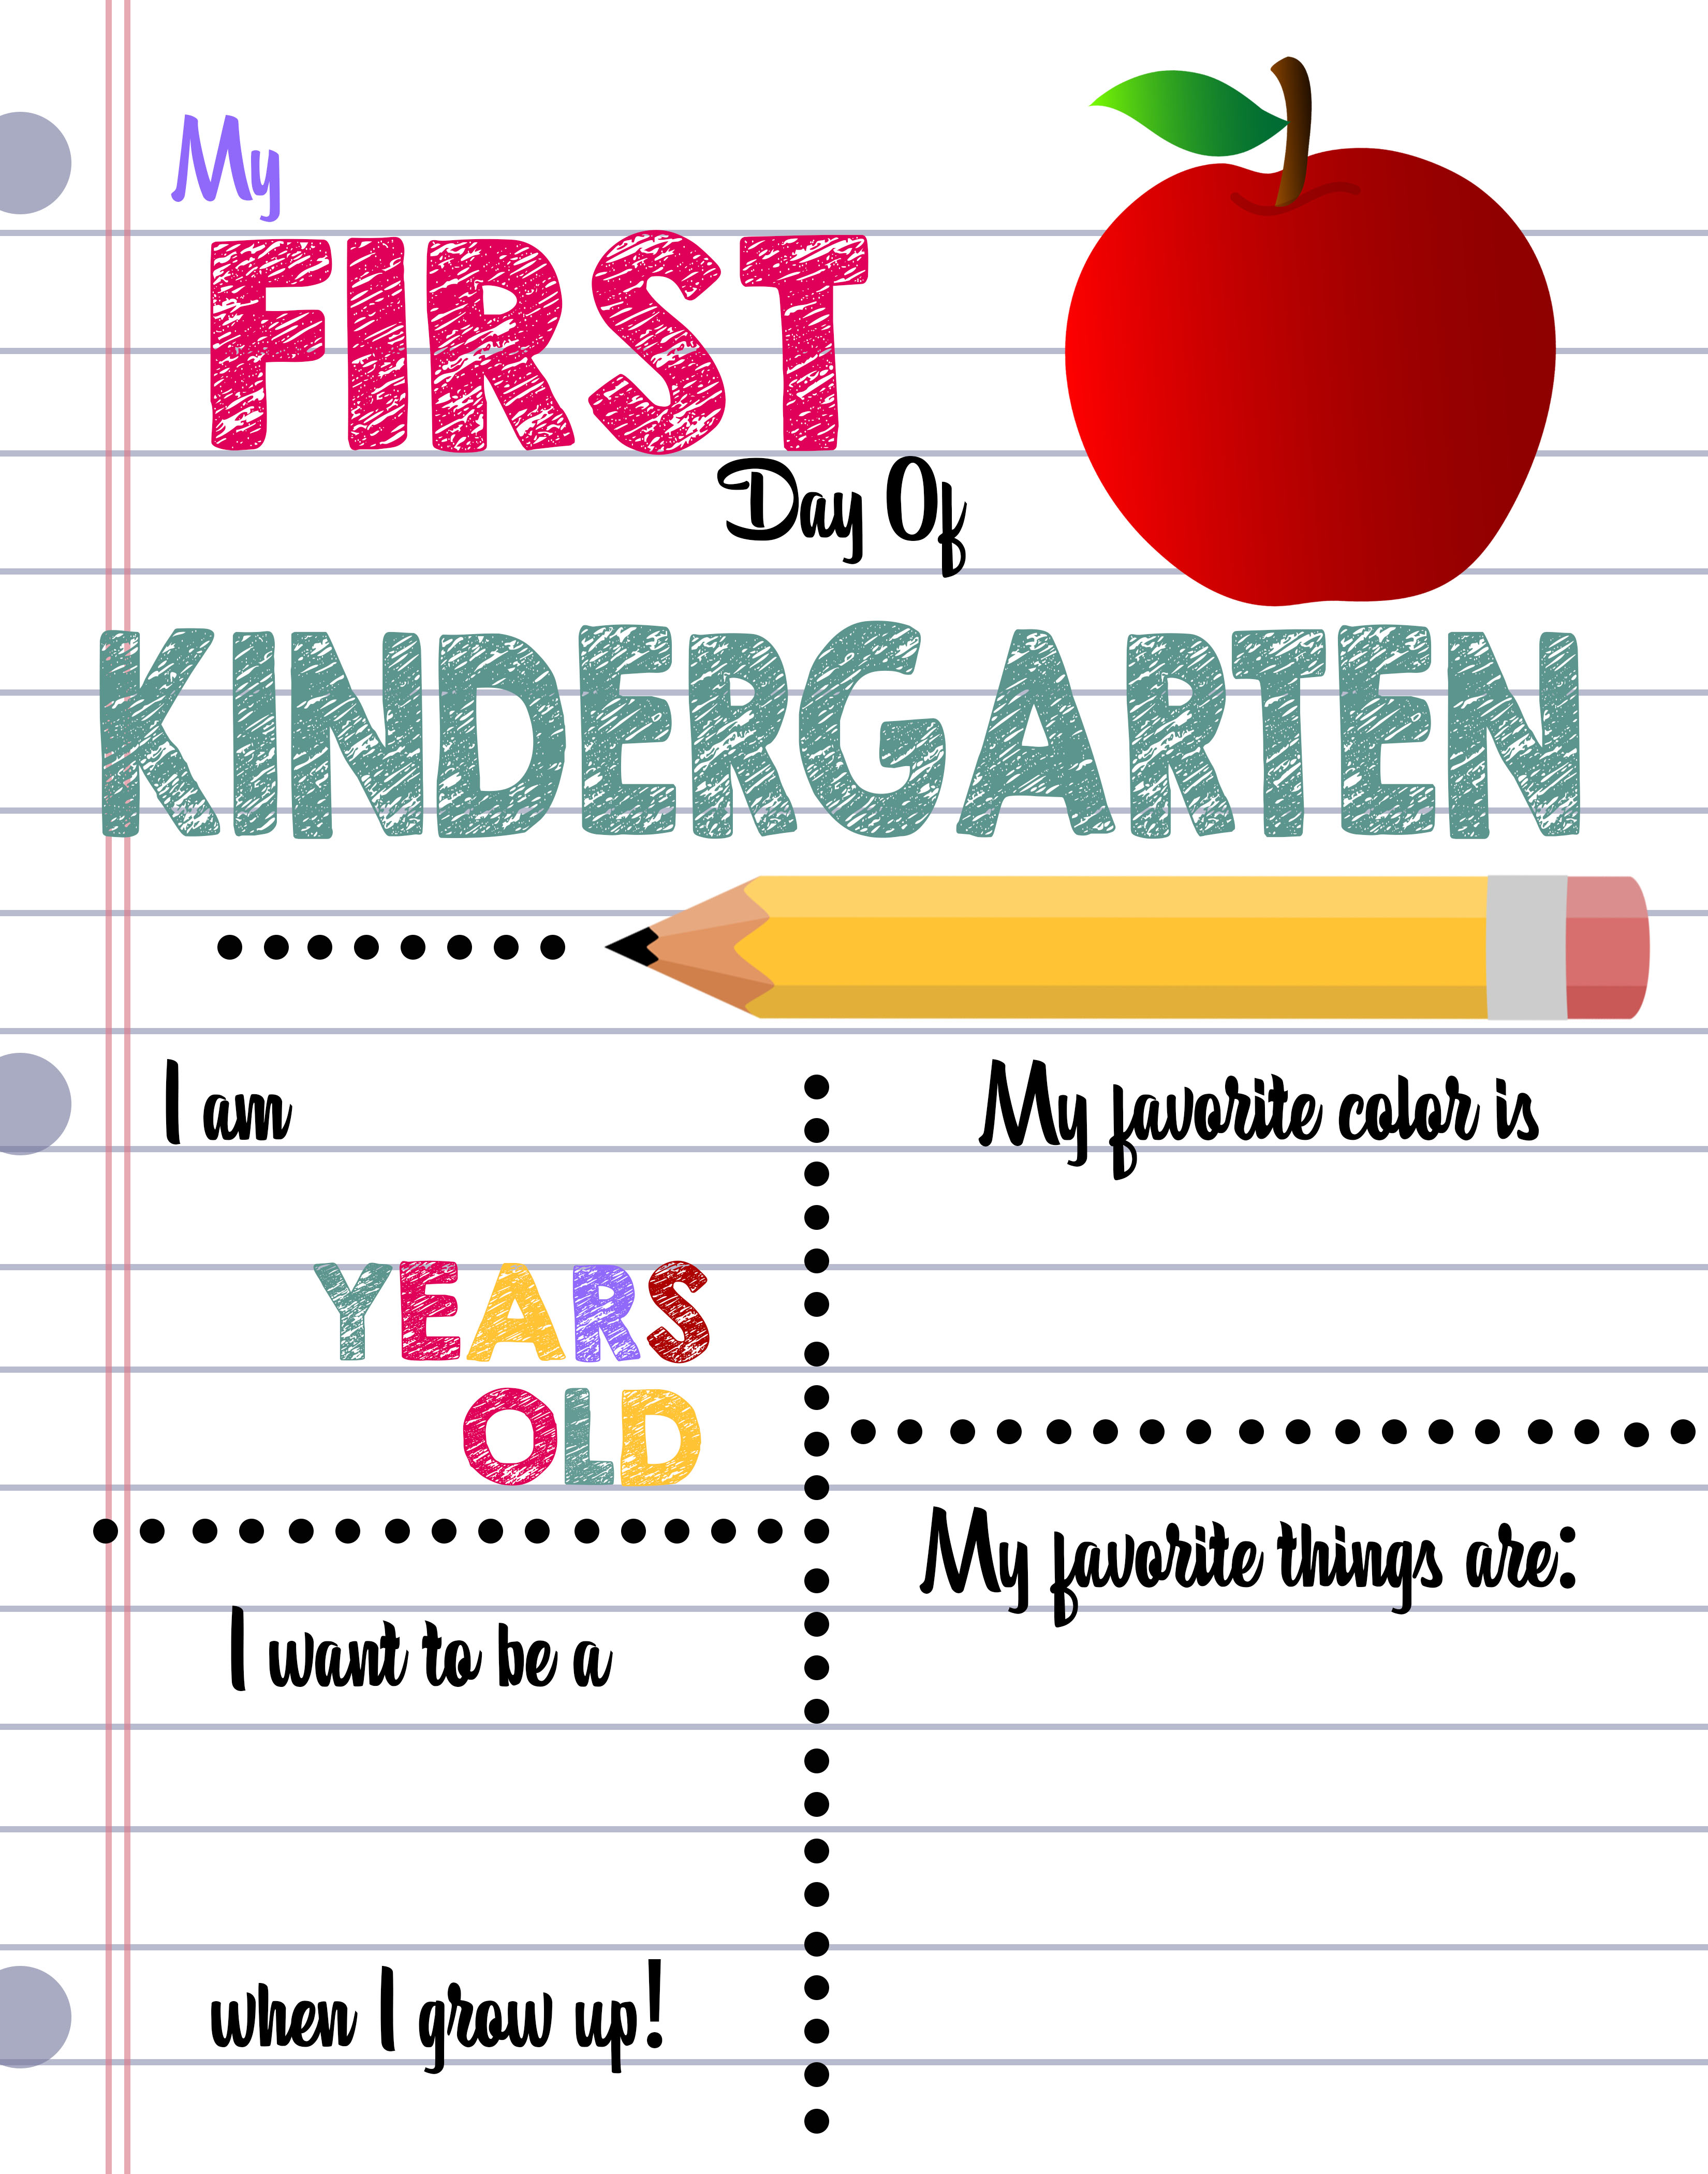 graphic regarding First Day of 1st Grade Printable Sign known as Very first Working day of Higher education Printable Indication Personalized Print Outs - Fast paced